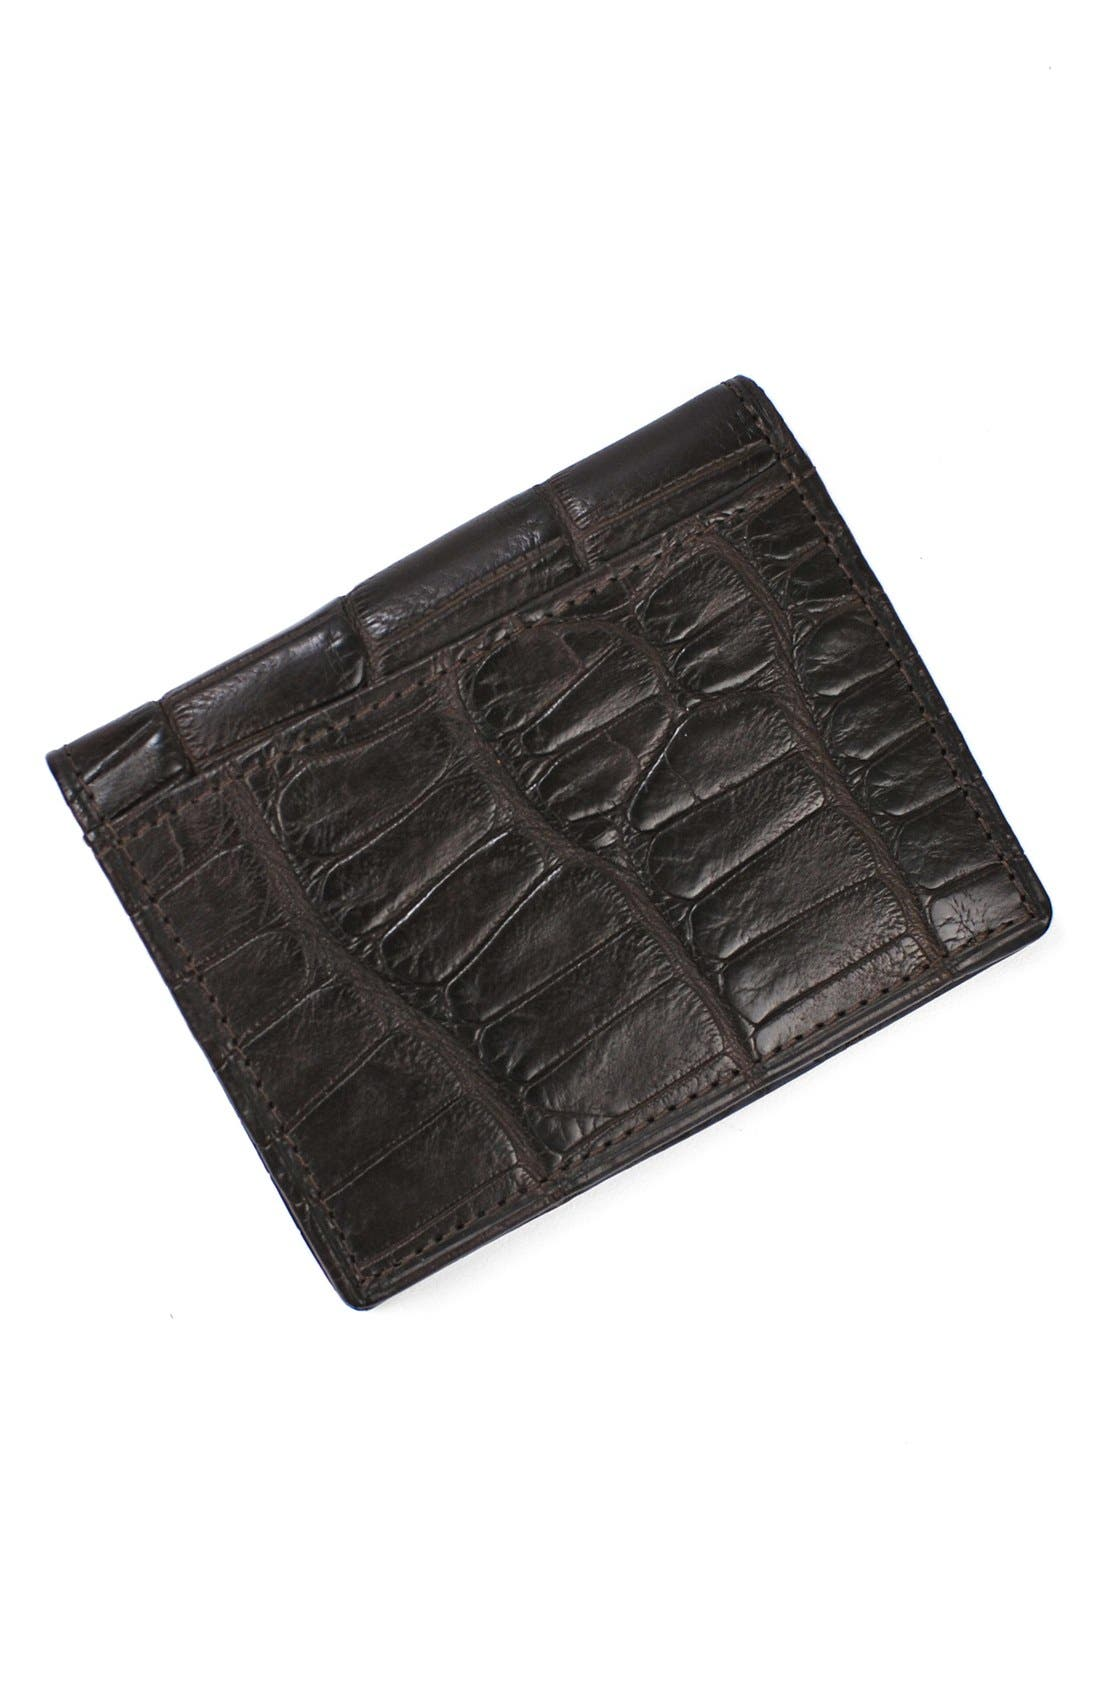 Jameson Matte Finish Genuine Alligator Leather Wallet,                             Main thumbnail 1, color,                             203